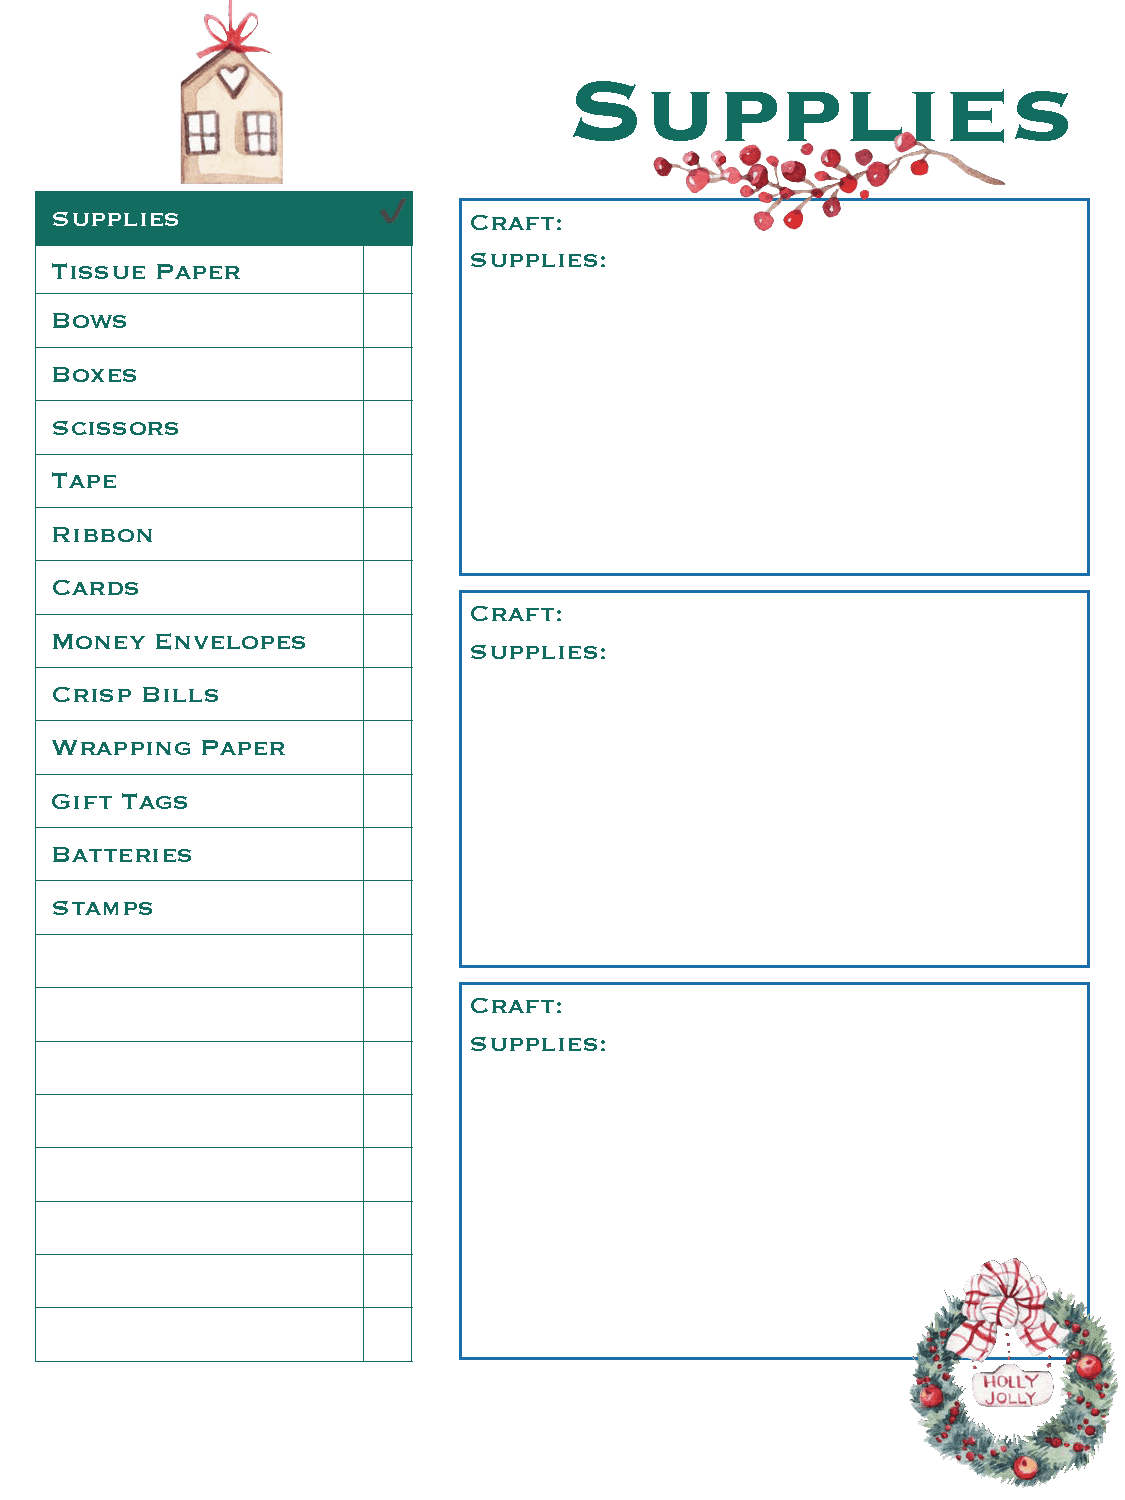 Supplies List - Christmas Planner - Good Life of a Housewife